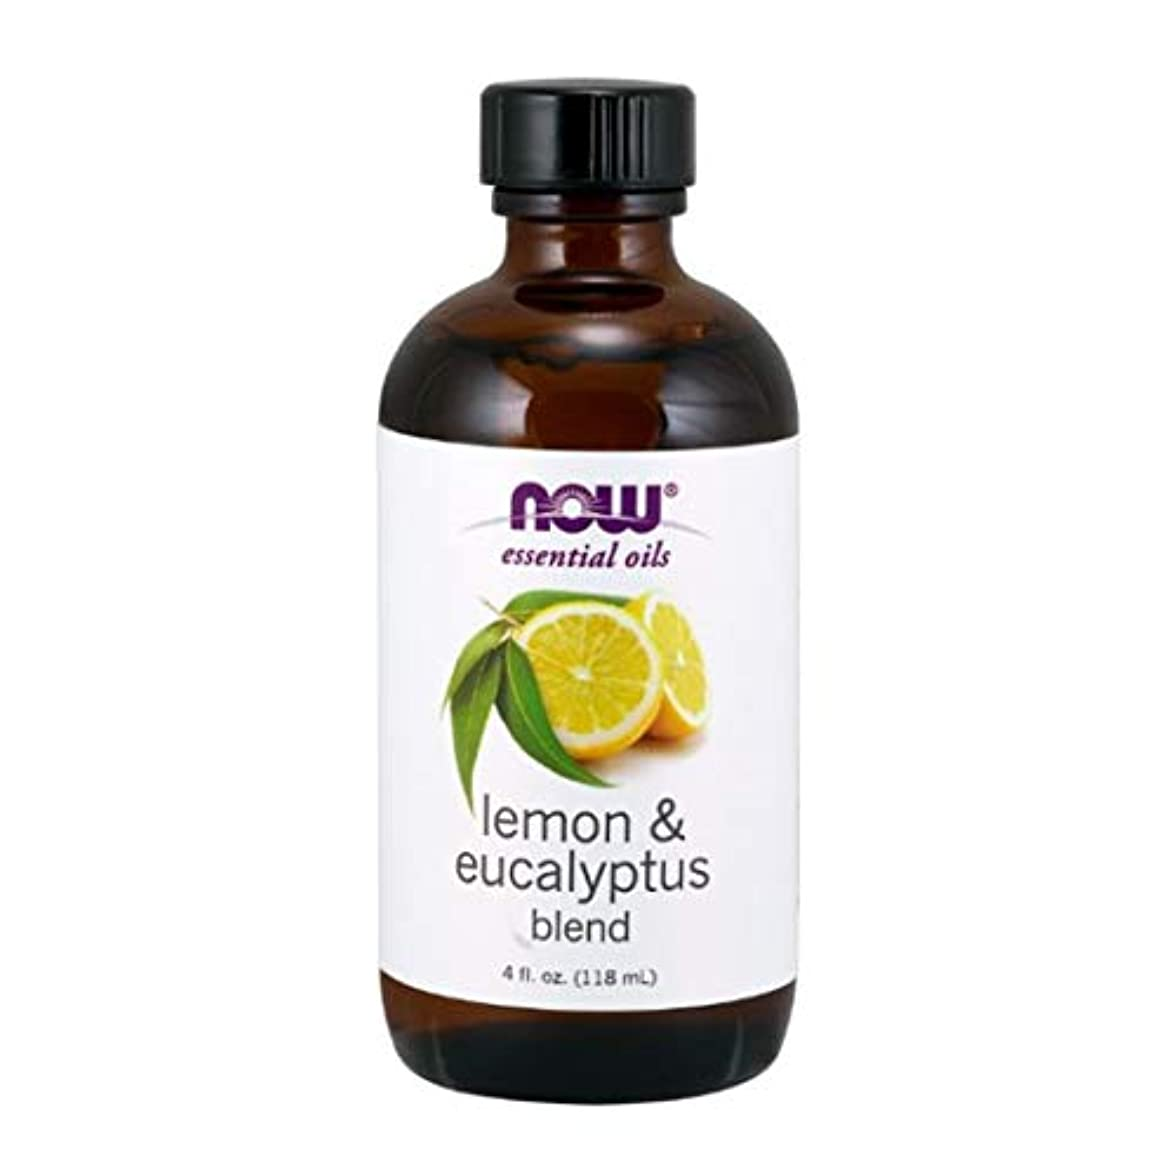 Now - Lemon & Eucalyptus Blend With Lemongrass 4 oz (118 ml) [並行輸入品]